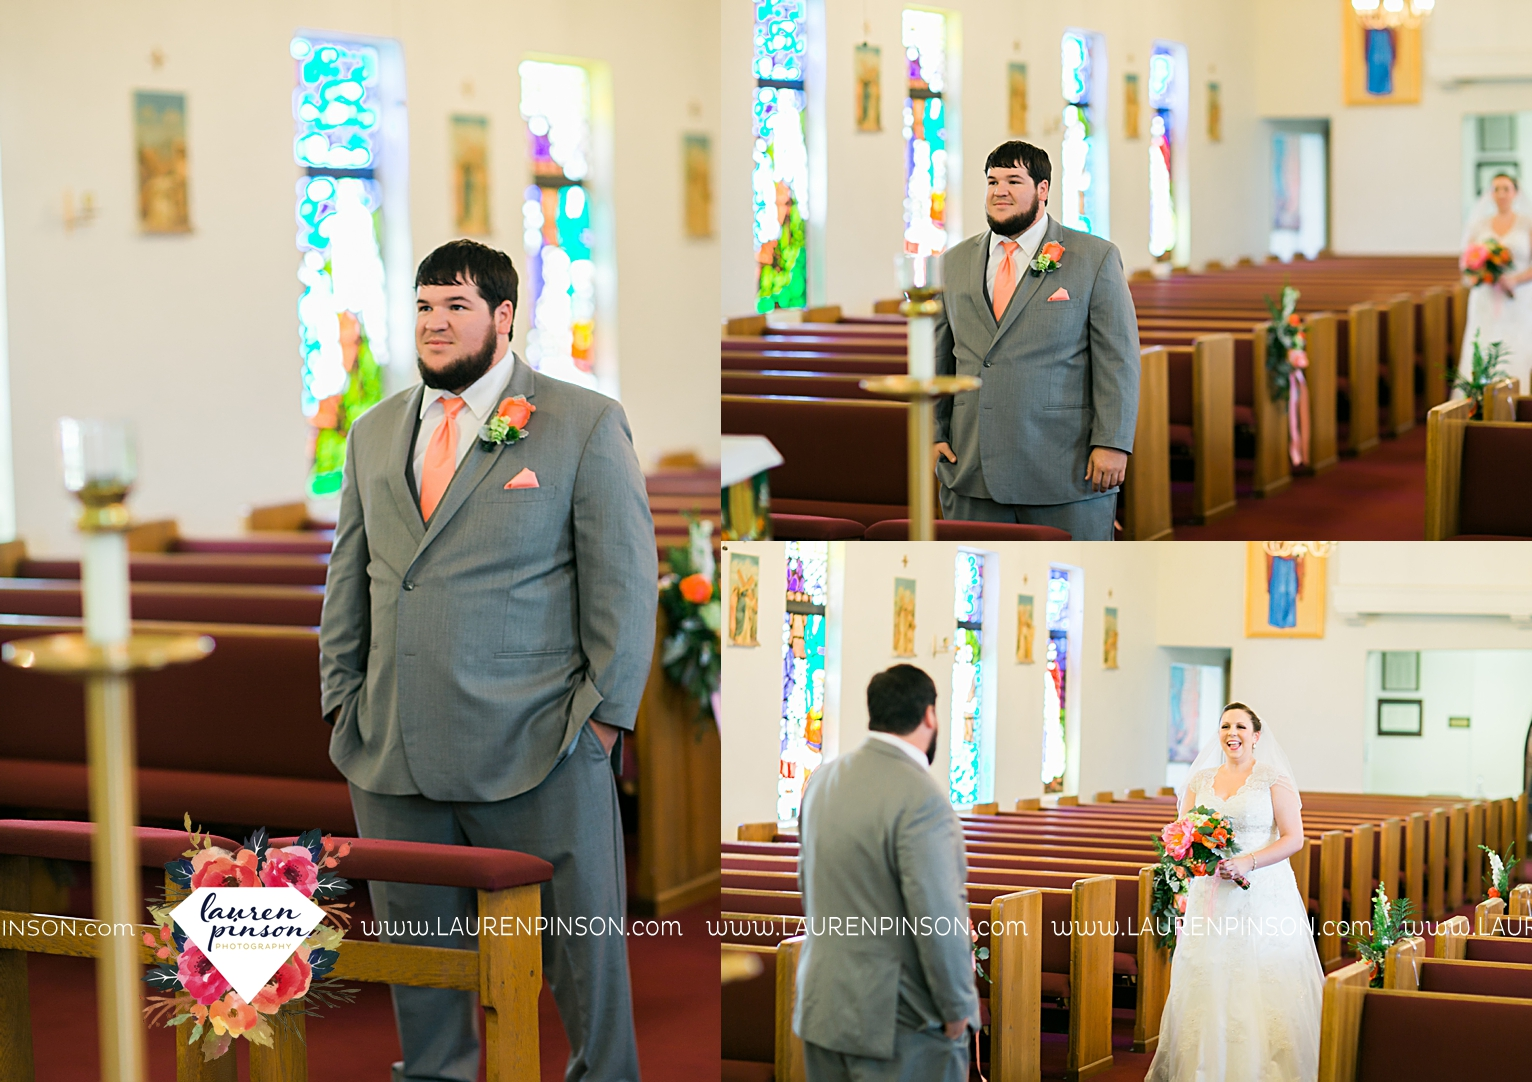 wichita-falls-texas-wedding-photography-seymour-st-marys-catholic-church-wedding-texas-photographer-00015.jpg